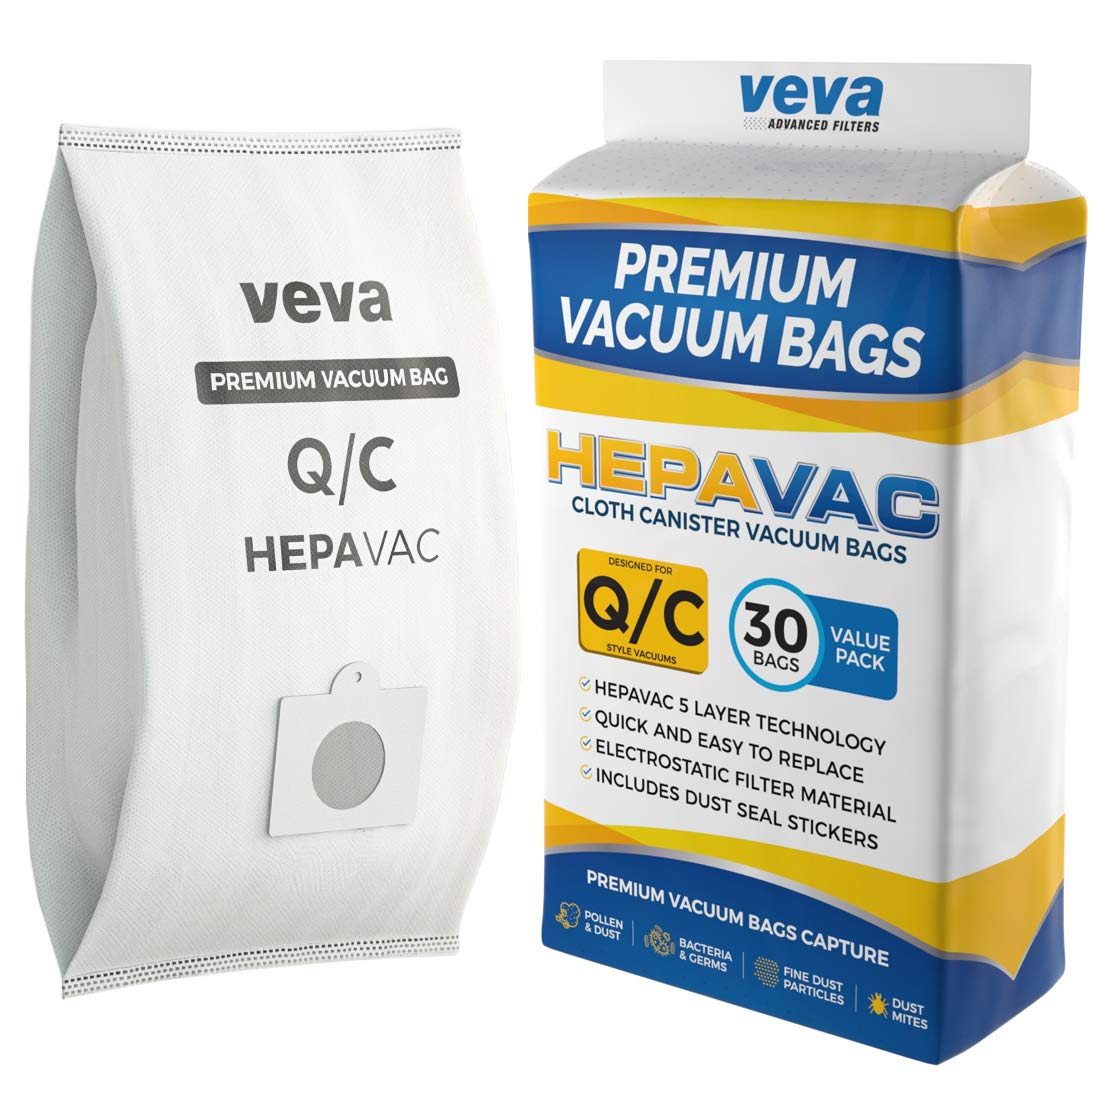 VEVA 30 Pack Premium HEPA Vacuum Bags Type Q Cloth Bag Compatible with Kenmore Sears Canister Vacuum Cleaners Replacement Style C, CQ, 5055, 50557, 50558, 53292, 53291 Bags by VEVA